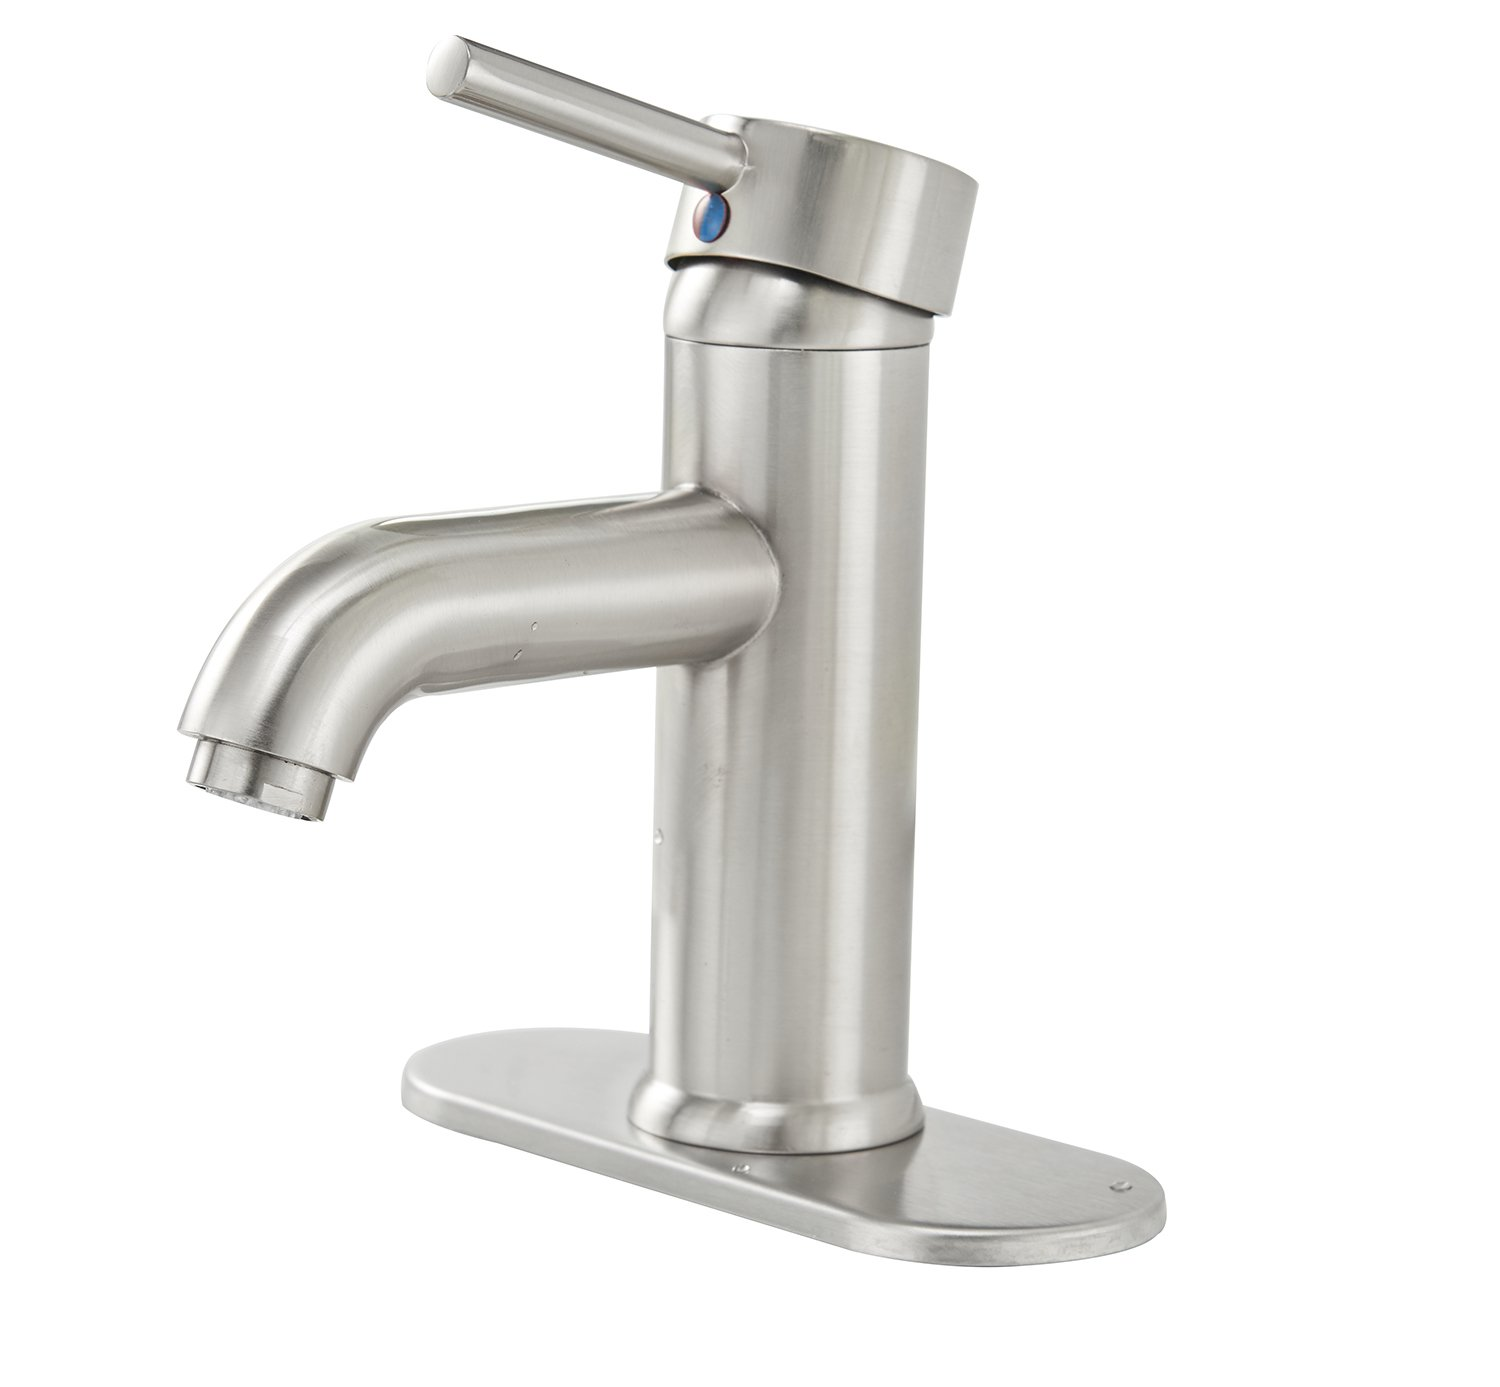 Greenspring One Hole Single Handle Bathroom Sink Faucet with Deck Plate Deck Mount Lavatory Stainless Steel Brushed Nickel